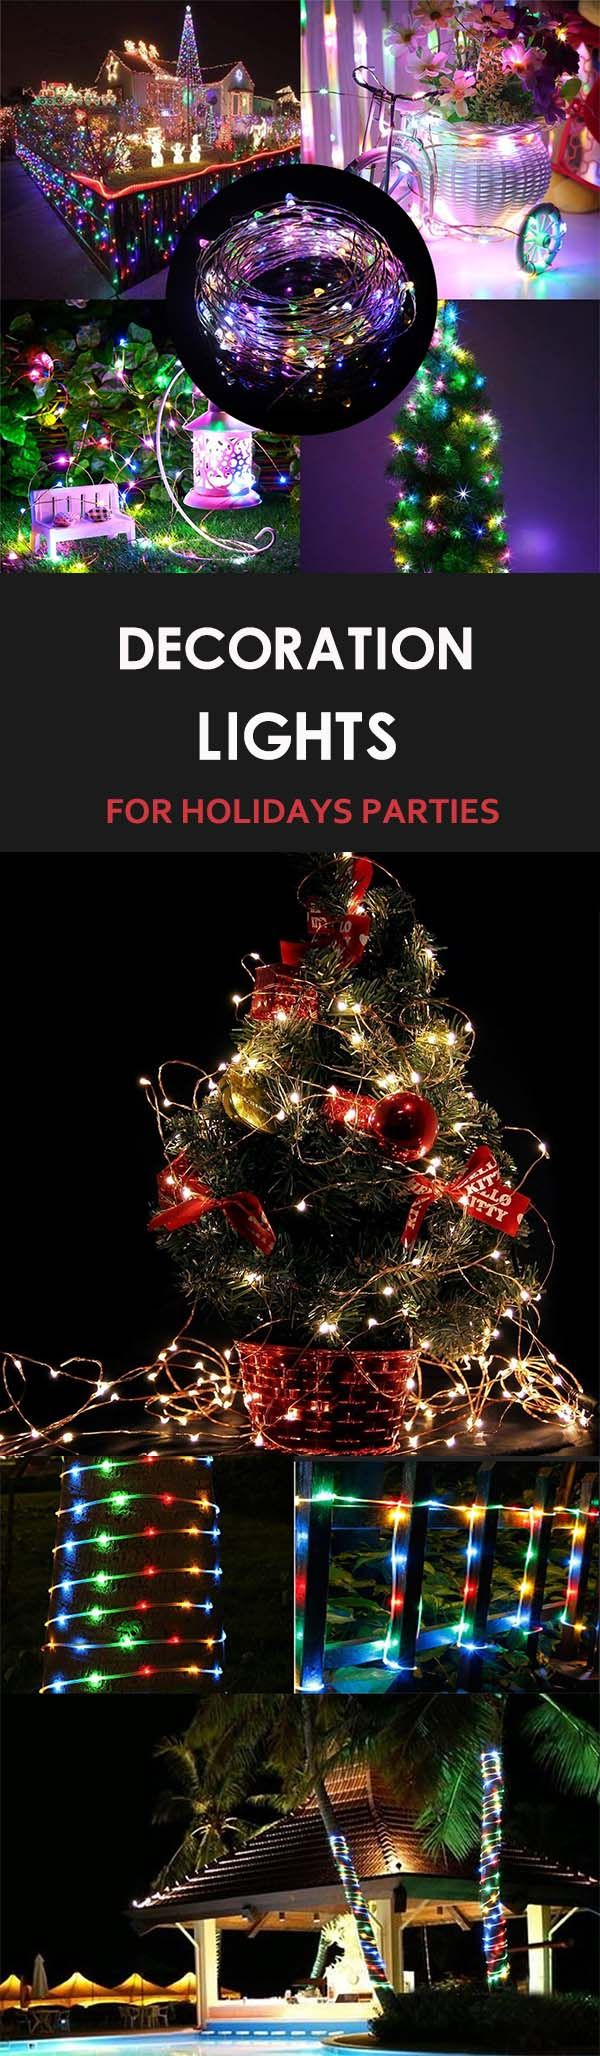 For christmas decorations and outdoor christmas decorations shop with - Best 25 Indoor Christmas Lights Ideas On Pinterest Outdoor Lighted Christmas Decorations Diy Christmas Indoor Decorations And Xmas Decorations